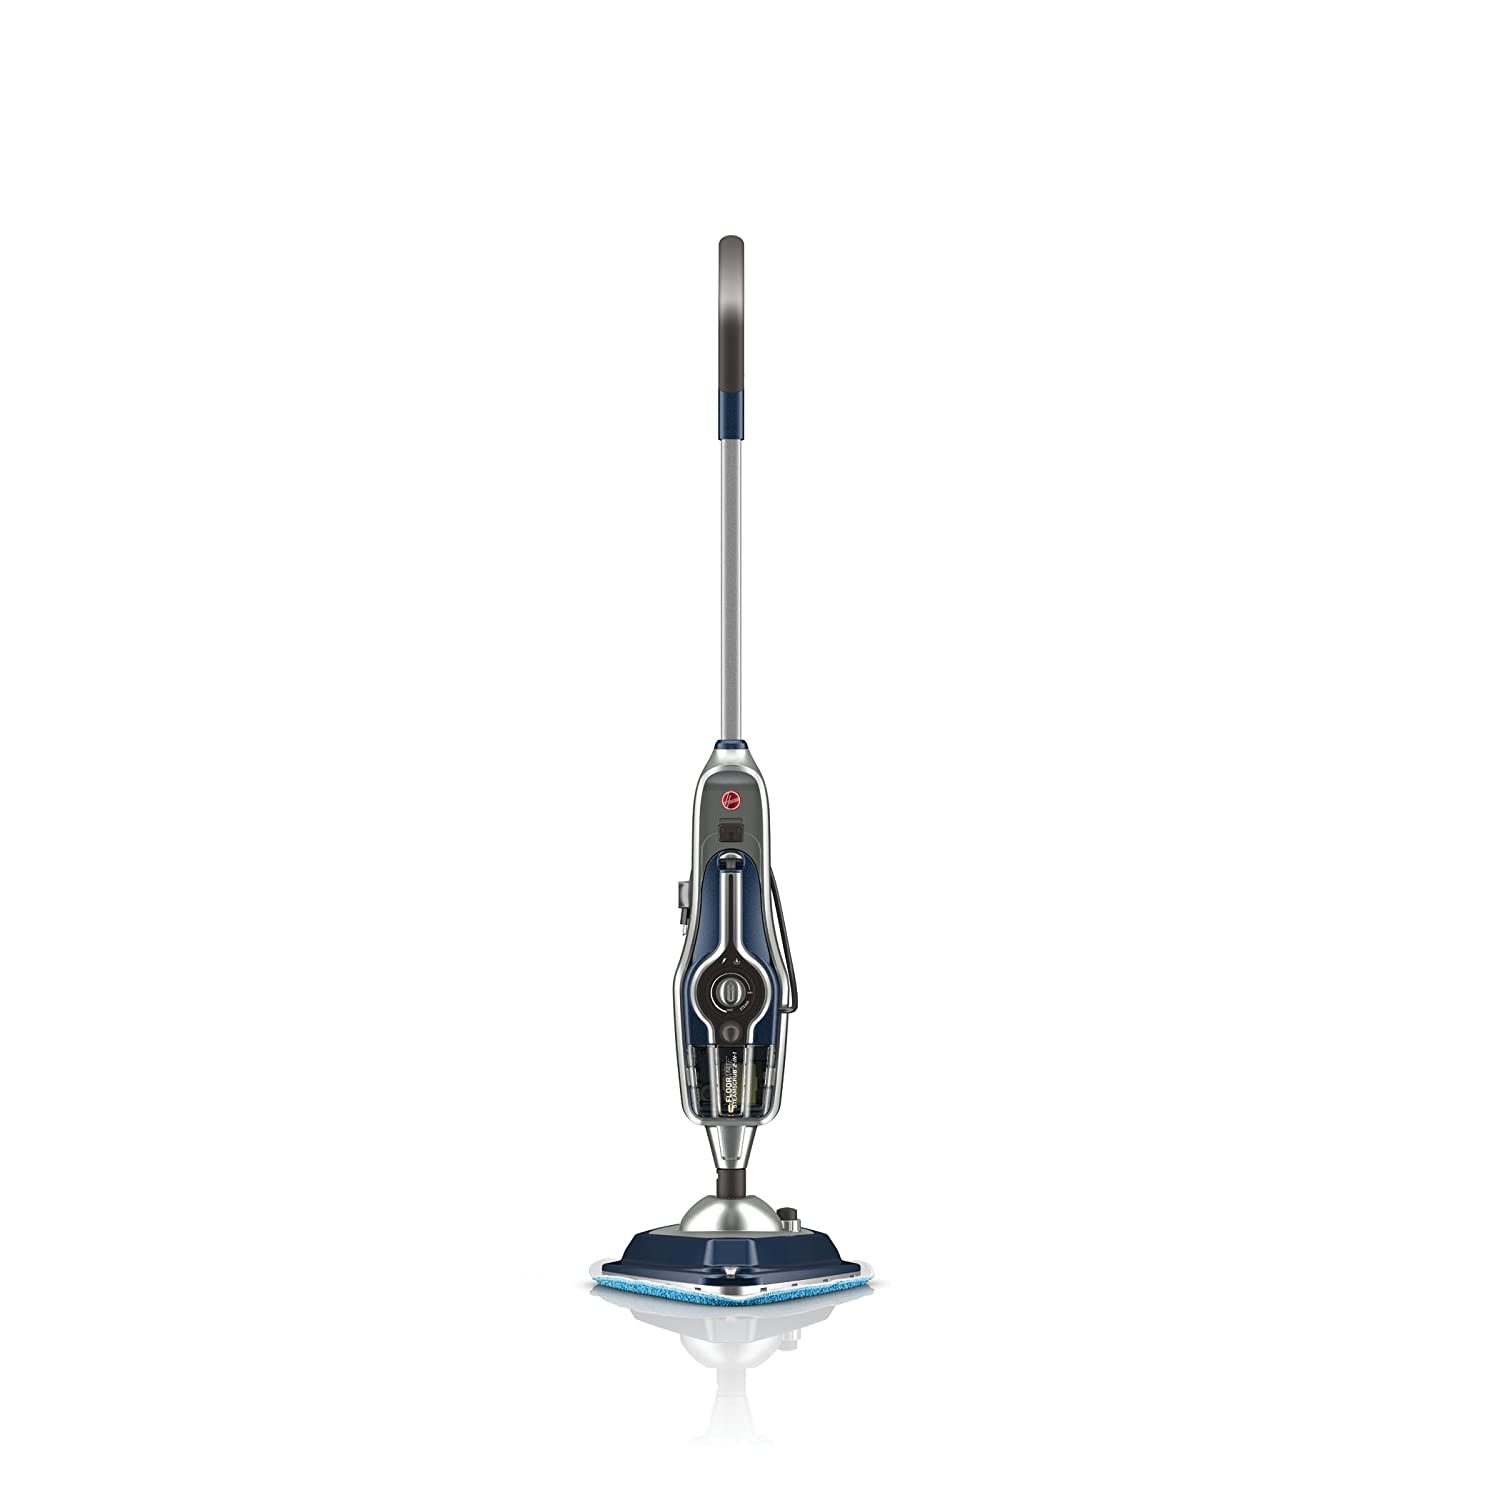 Hoover FloorMate SteamScrub 2-in-1 Hard Floor Steamer, WH20440PC